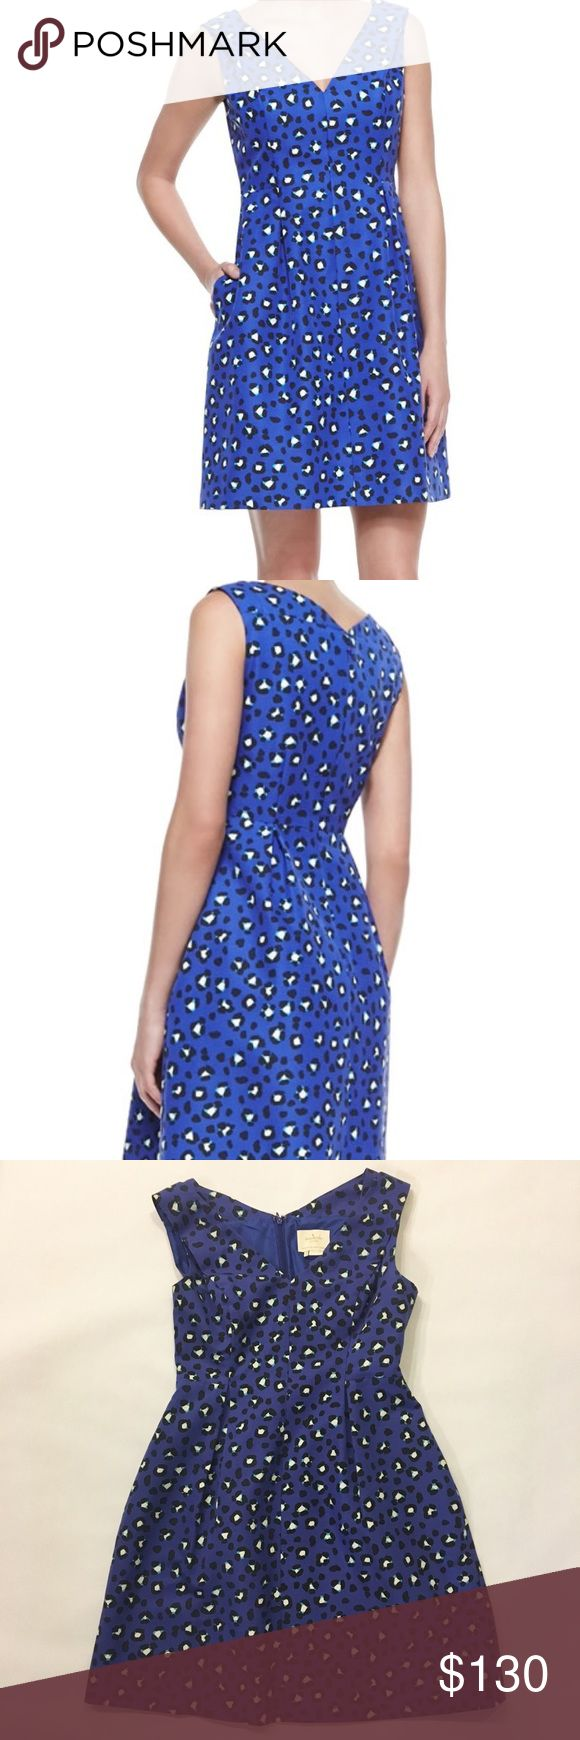 Kate Spade NY Dawson Cyber Cheetah dress Kate Spade NY Dawson Cyber Cheetah dress in vivid, emperor blue. V-neckline, sleeveless with A-line silhouette. Has side seam pockets and a hidden back zip. Cotton/silk with polyester lining.  Size 6 in EUC kate spade Dresses